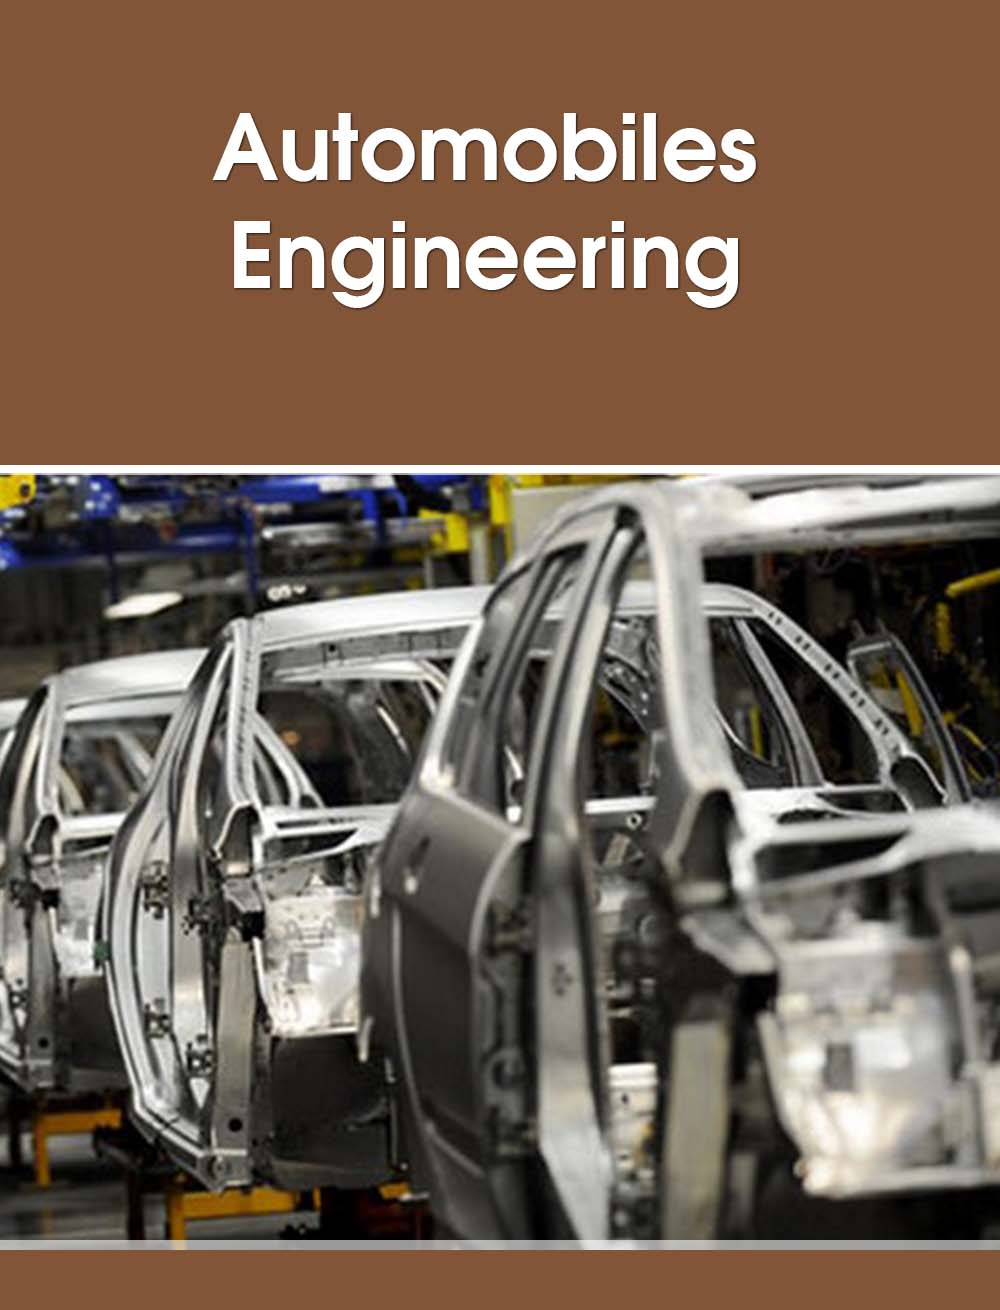 colleges for automobile engineering in Gujarat